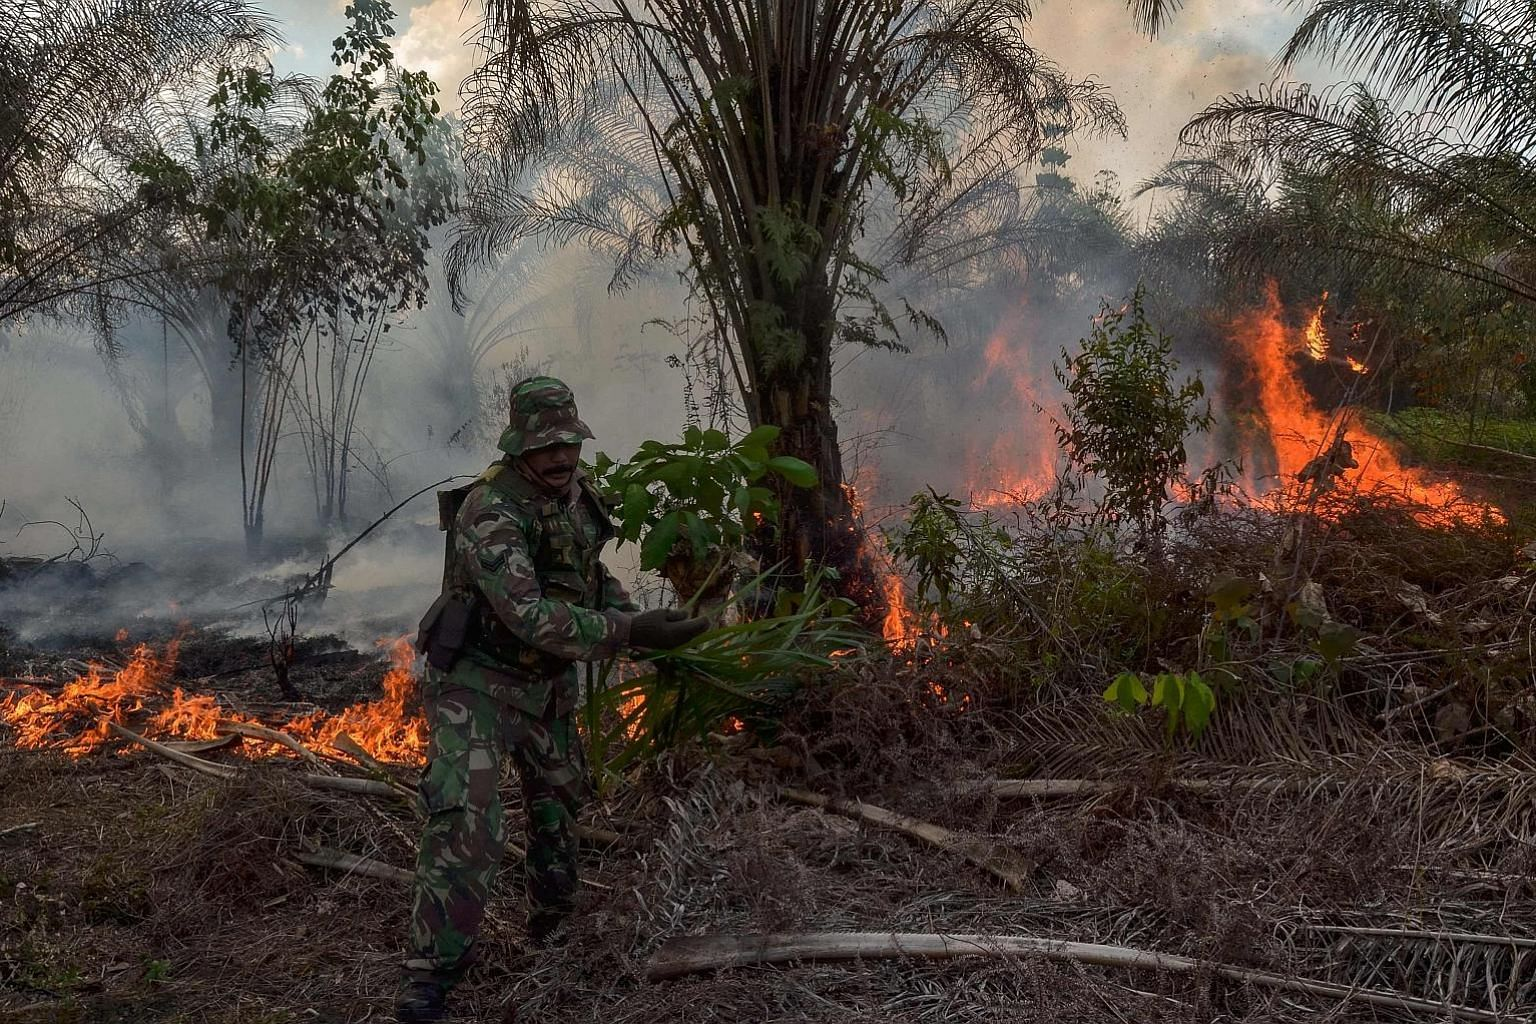 An Indonesian soldier trying to put out a fire at an oil palm plantation in Pekanbaru, Riau province, on Tuesday.